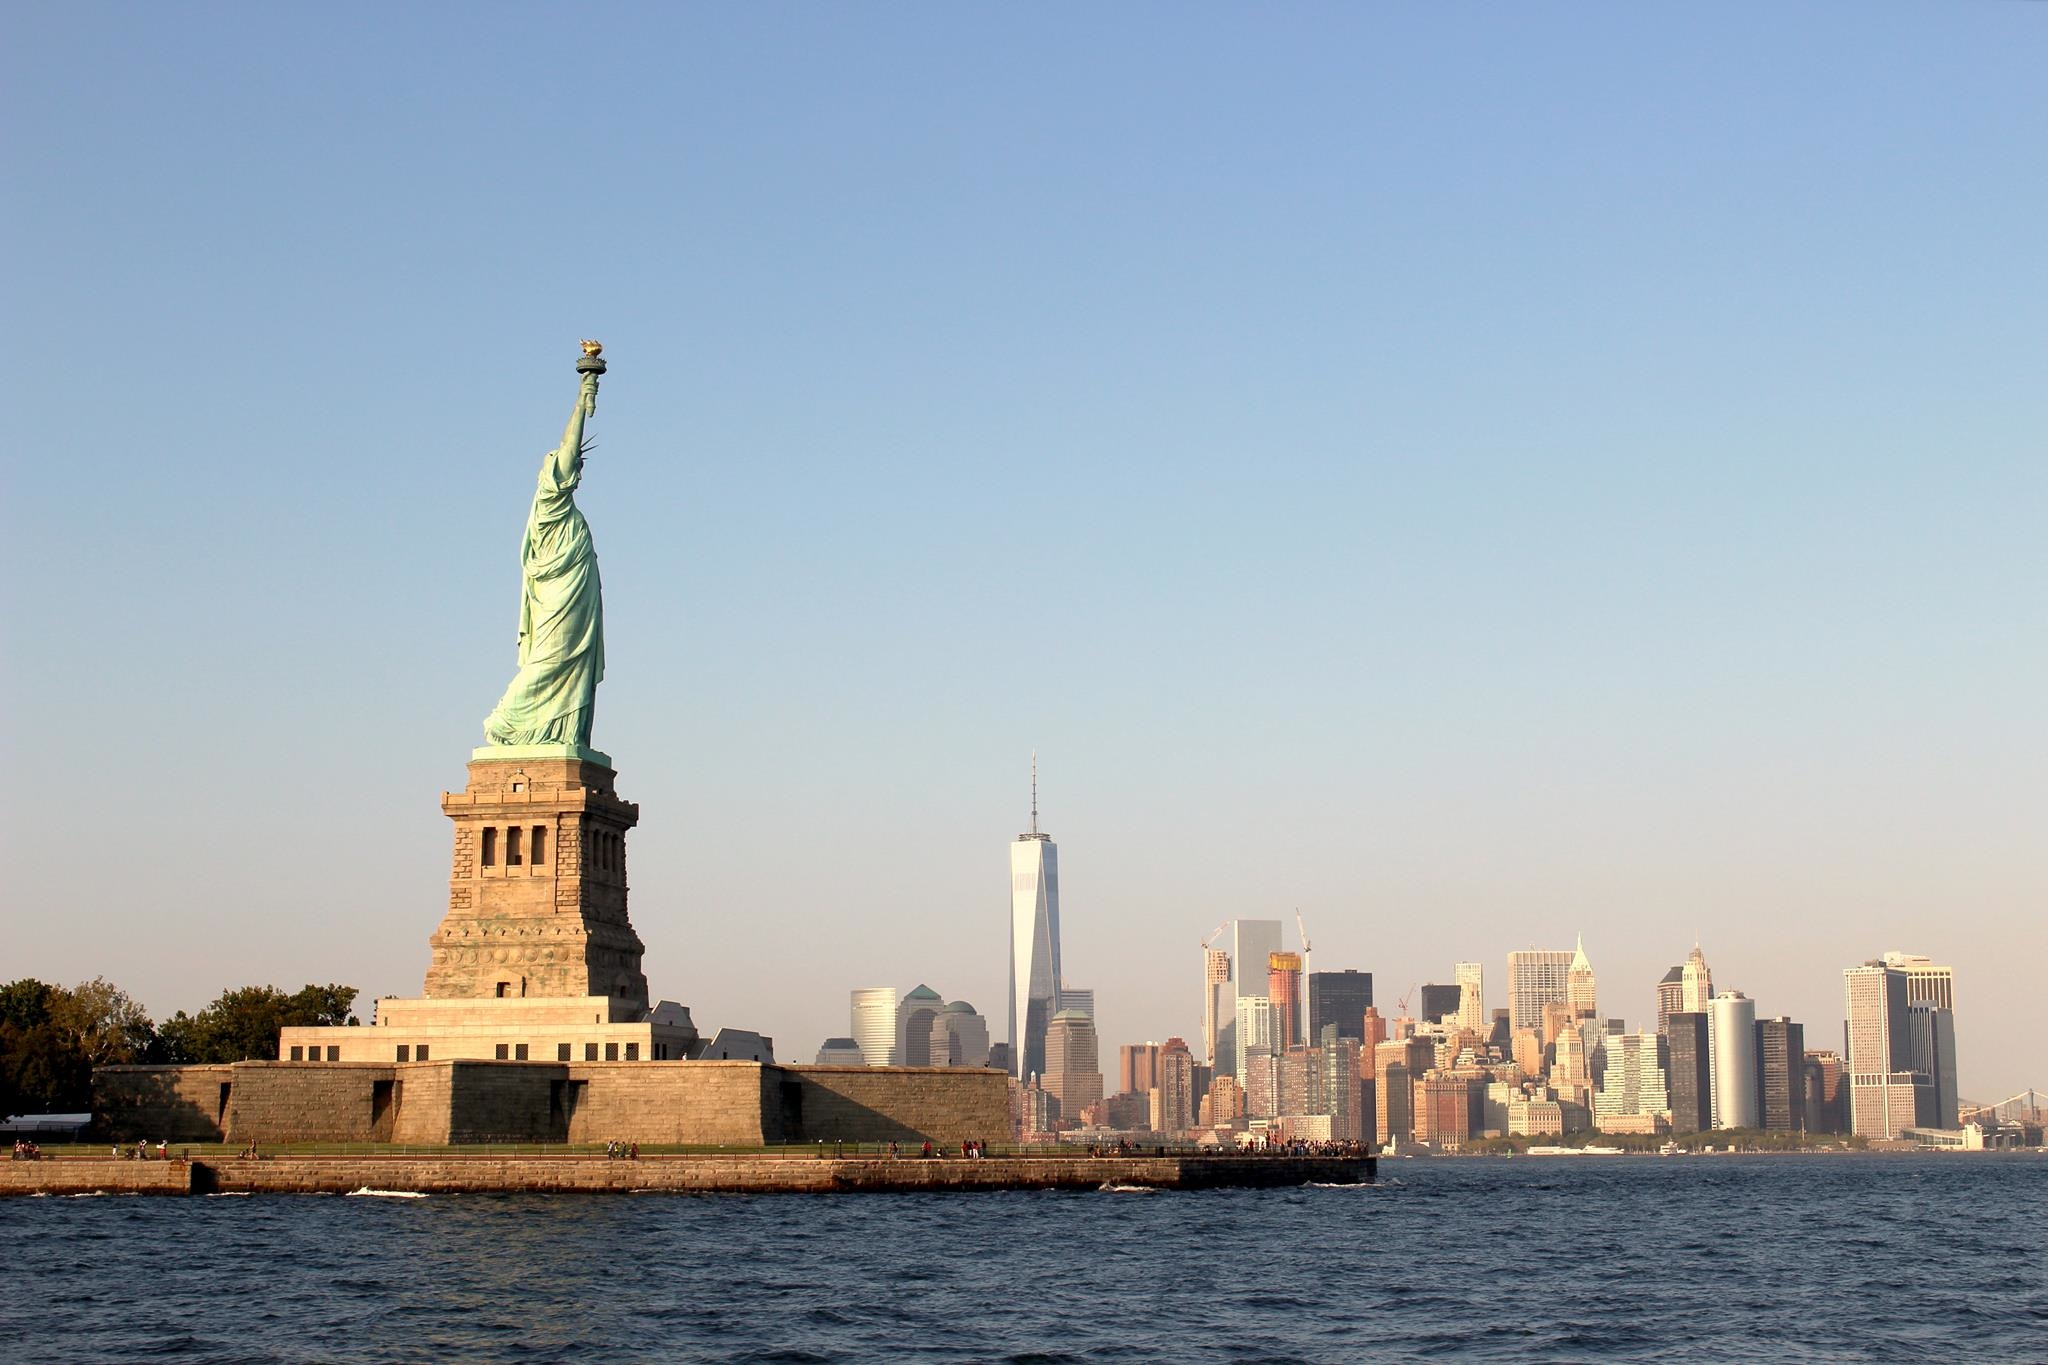 Fairytales of New York - Travel stories from the city that never sleeps